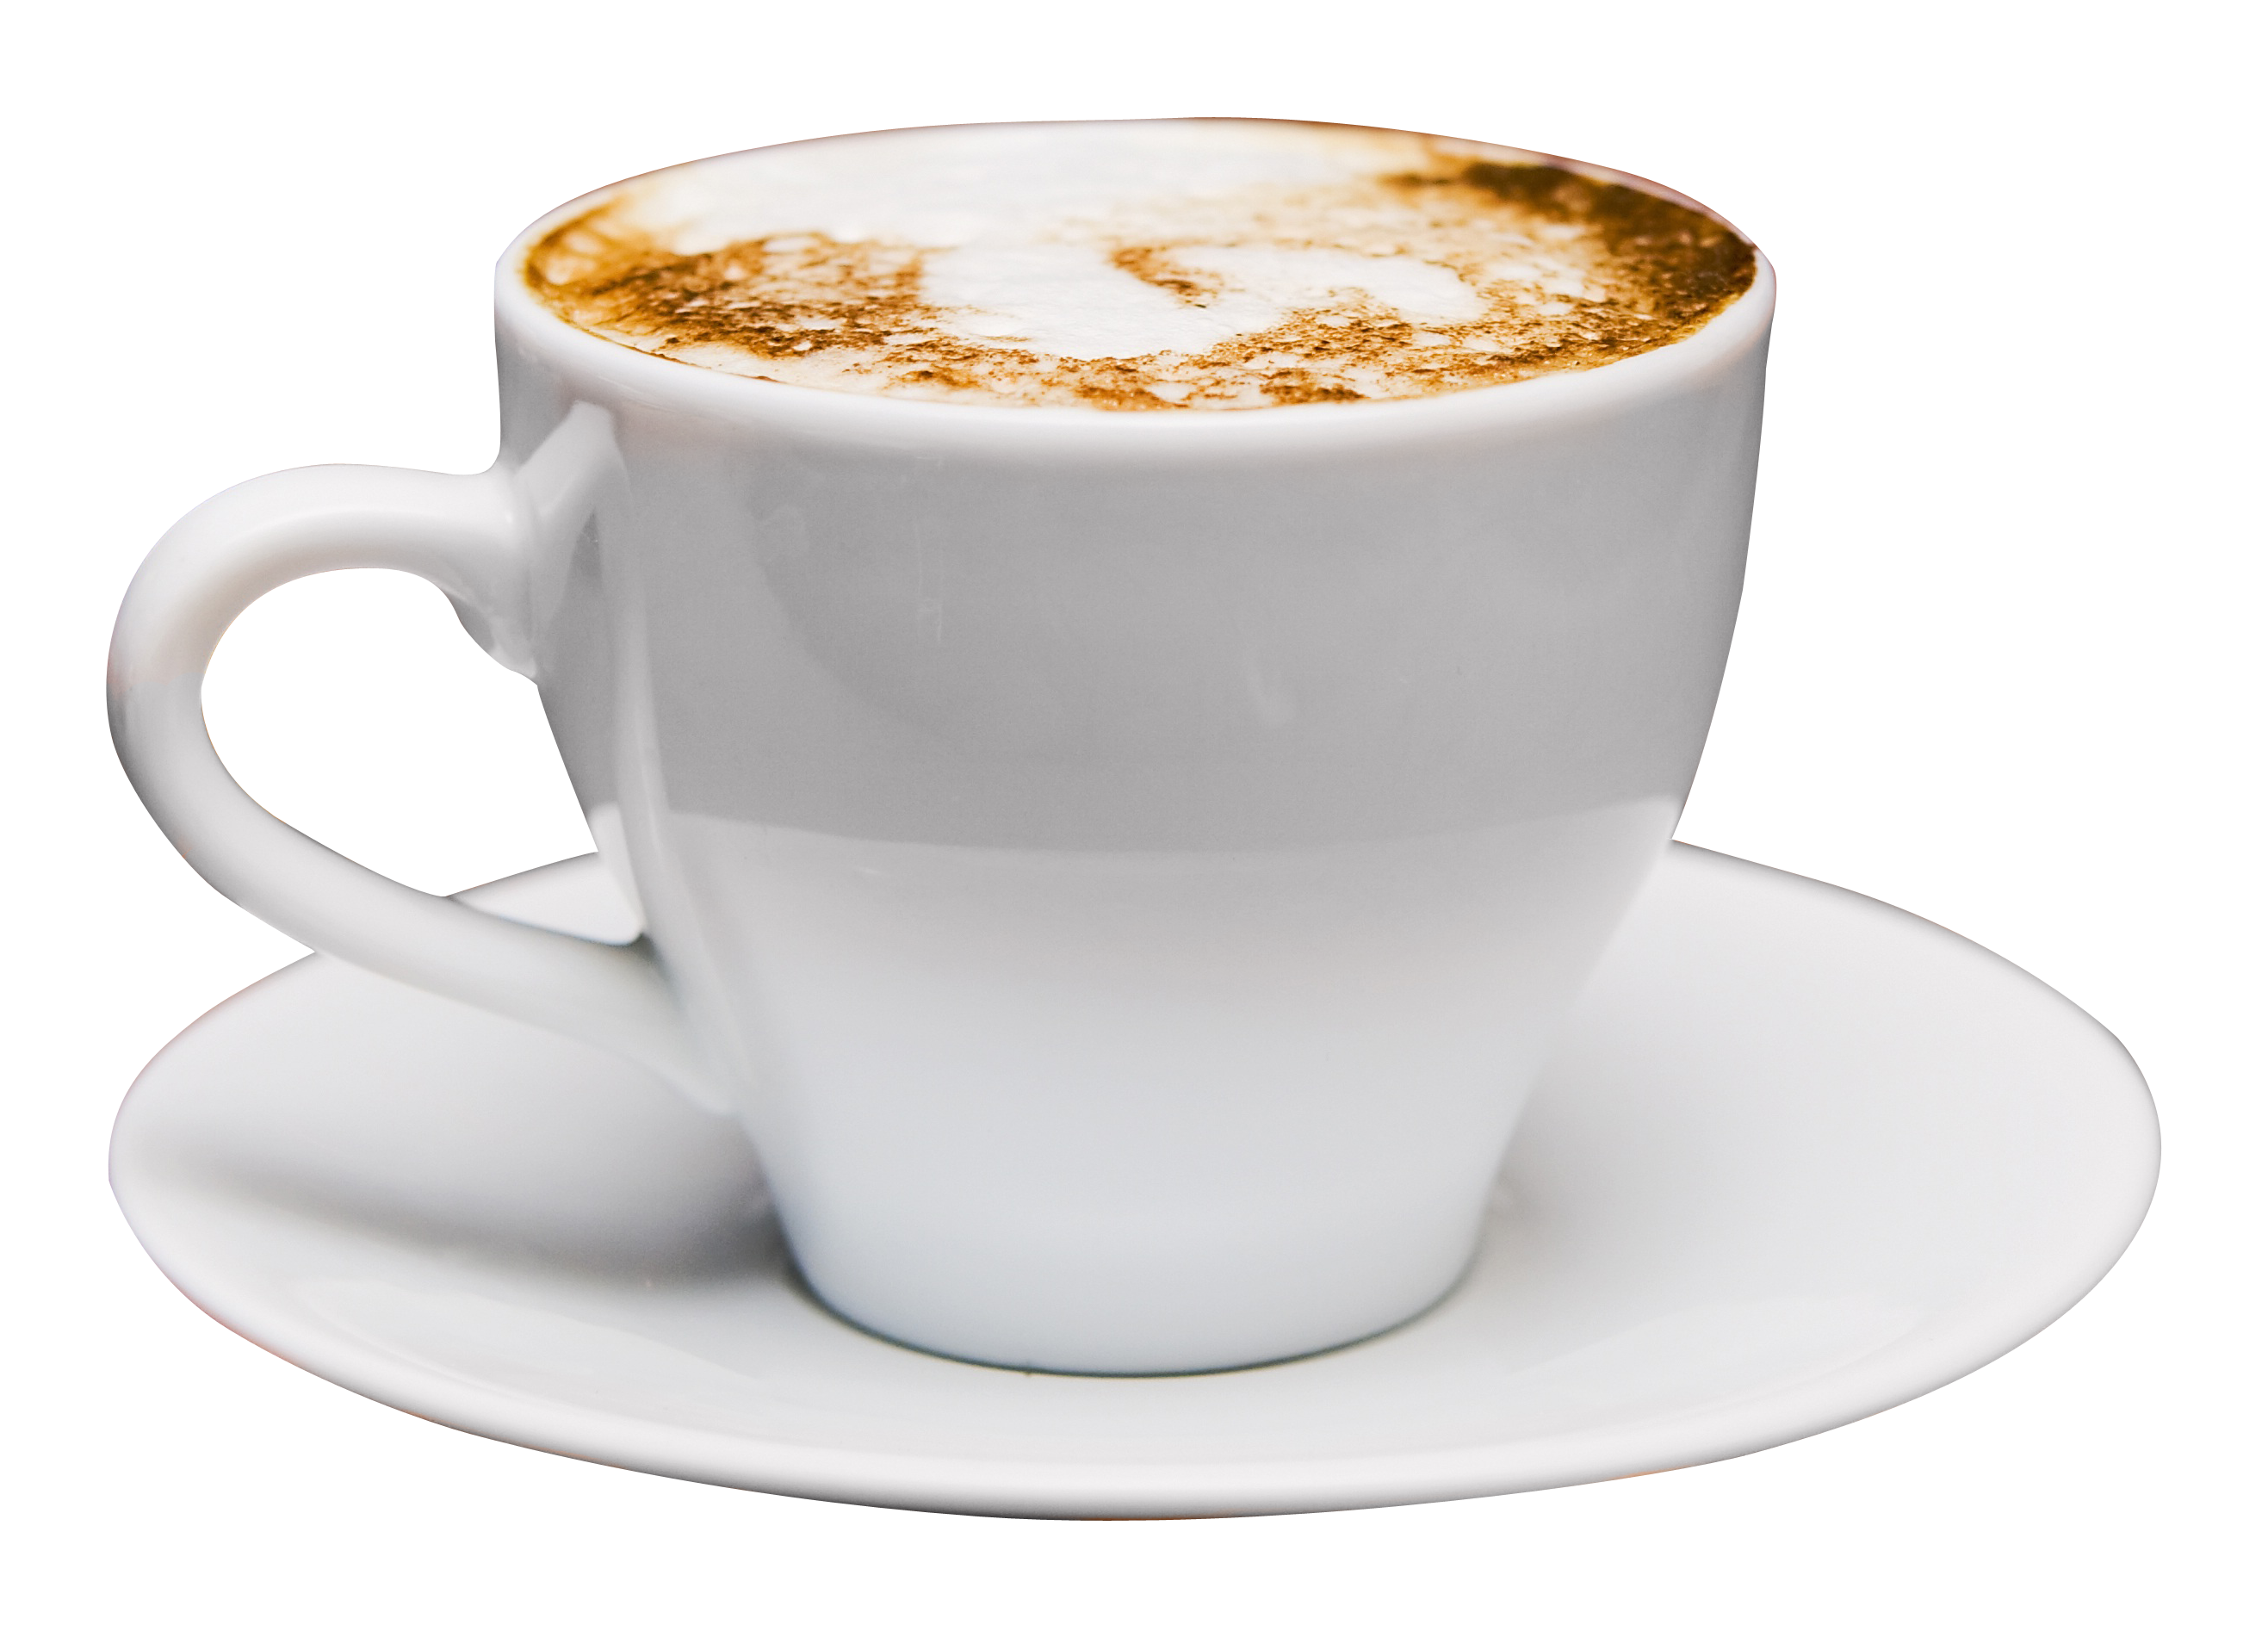 Png Of Cup Of Coffee - Download Coffee Cup PNG Free Download - Free Transparent PNG ...